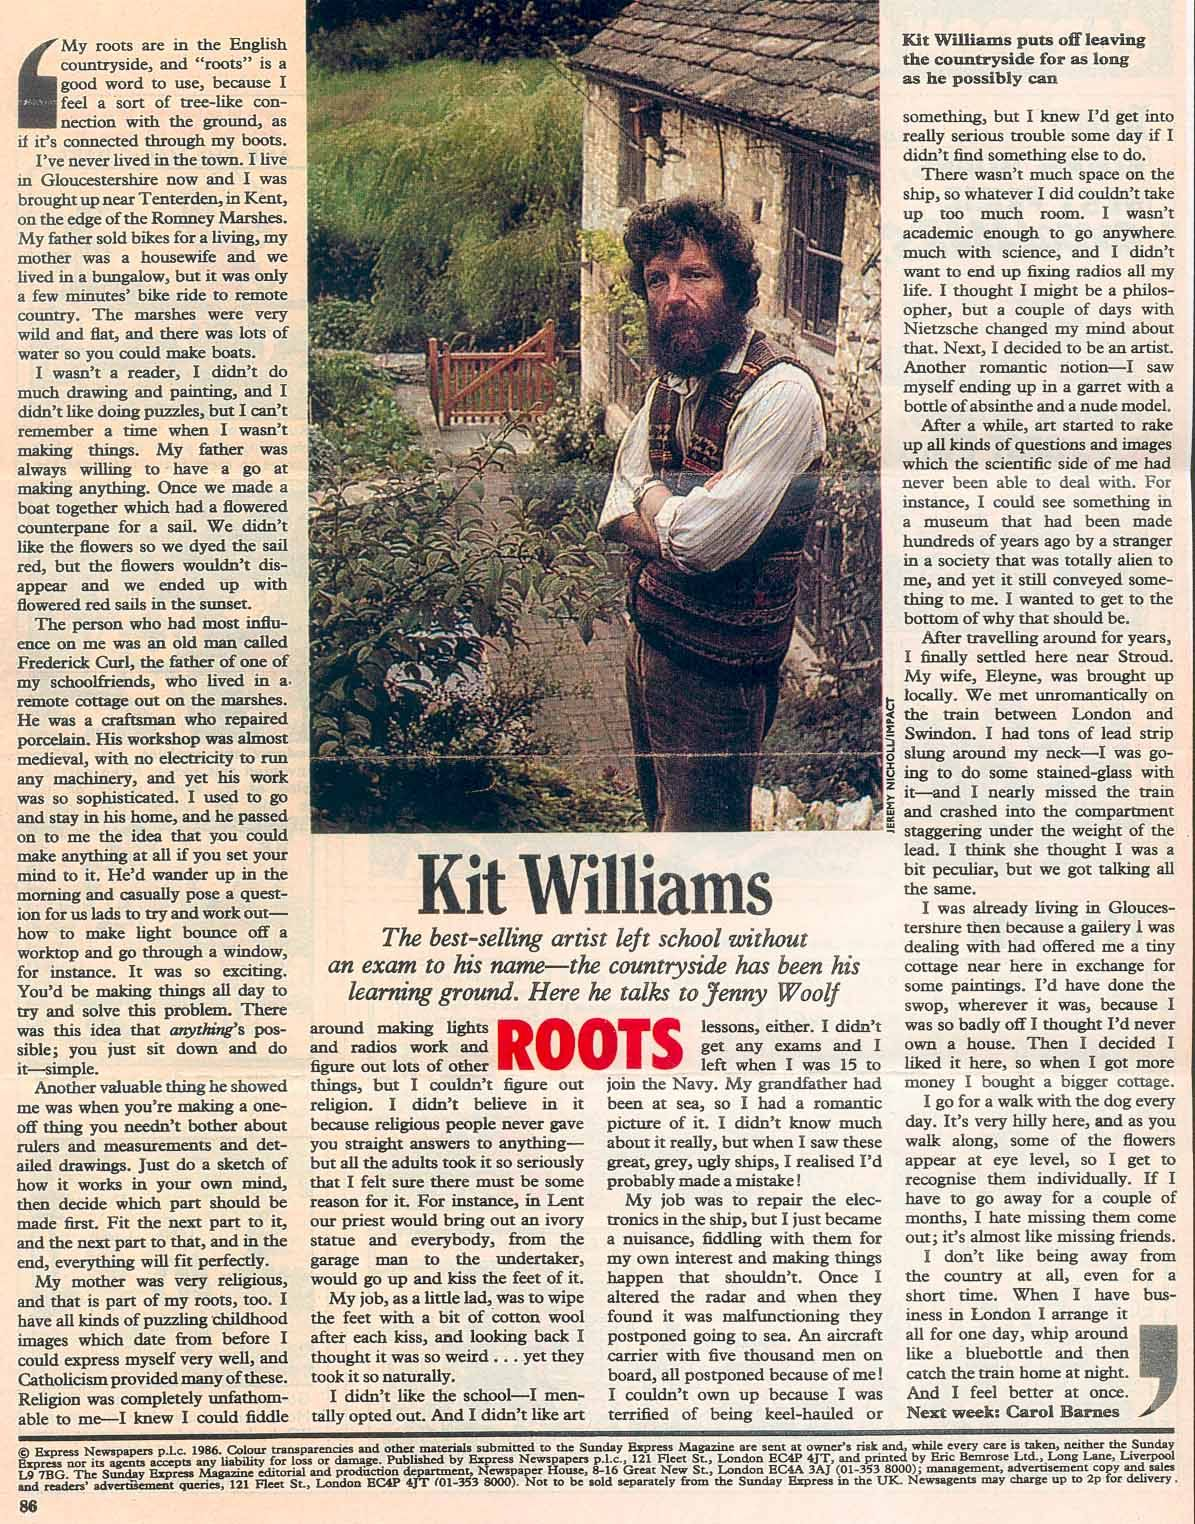 About Kit Williams http://bunnyears.net/kitwilliams/about-kit-williams/